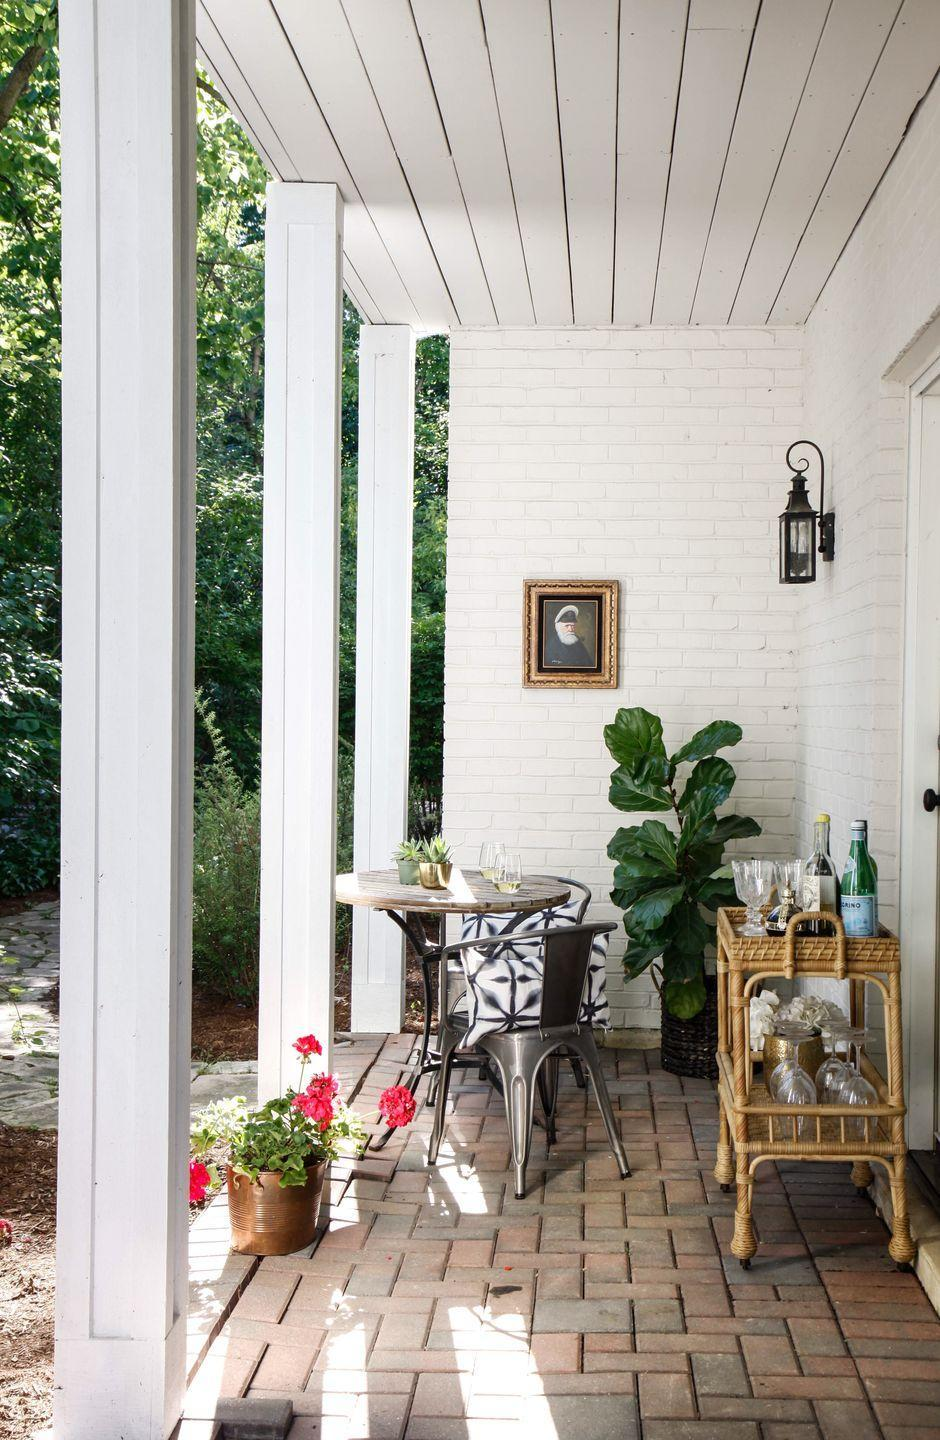 """<p>""""A bar cart is a simple yet impactful way to transform a patio into an outdoor cocktail room,"""" Christina Samatas and Renee DiSanto of <a href=""""http://parkandoak.com/"""" rel=""""nofollow noopener"""" target=""""_blank"""" data-ylk=""""slk:Park & Oak"""" class=""""link rapid-noclick-resp"""">Park & Oak</a> tell us. """"For this space, we centered the porch around a rattan bar cart for a touch of vintage character that uniquely contrasts against the brick and paneled ceiling. We always like to make any outdoor space feel like a continuation of the interior, so we chose artwork and decorative pillows that would create a sense of cohesiveness with the rest of the home. To carry the garden up to the porch, we added a few potted plants and flowers, elevated with a rustic copper pot and woven basket. The mixture of rustic and sophisticated elements comes together to create a timeless and functional outdoor space fit for enjoying cocktails alfresco.""""</p>"""